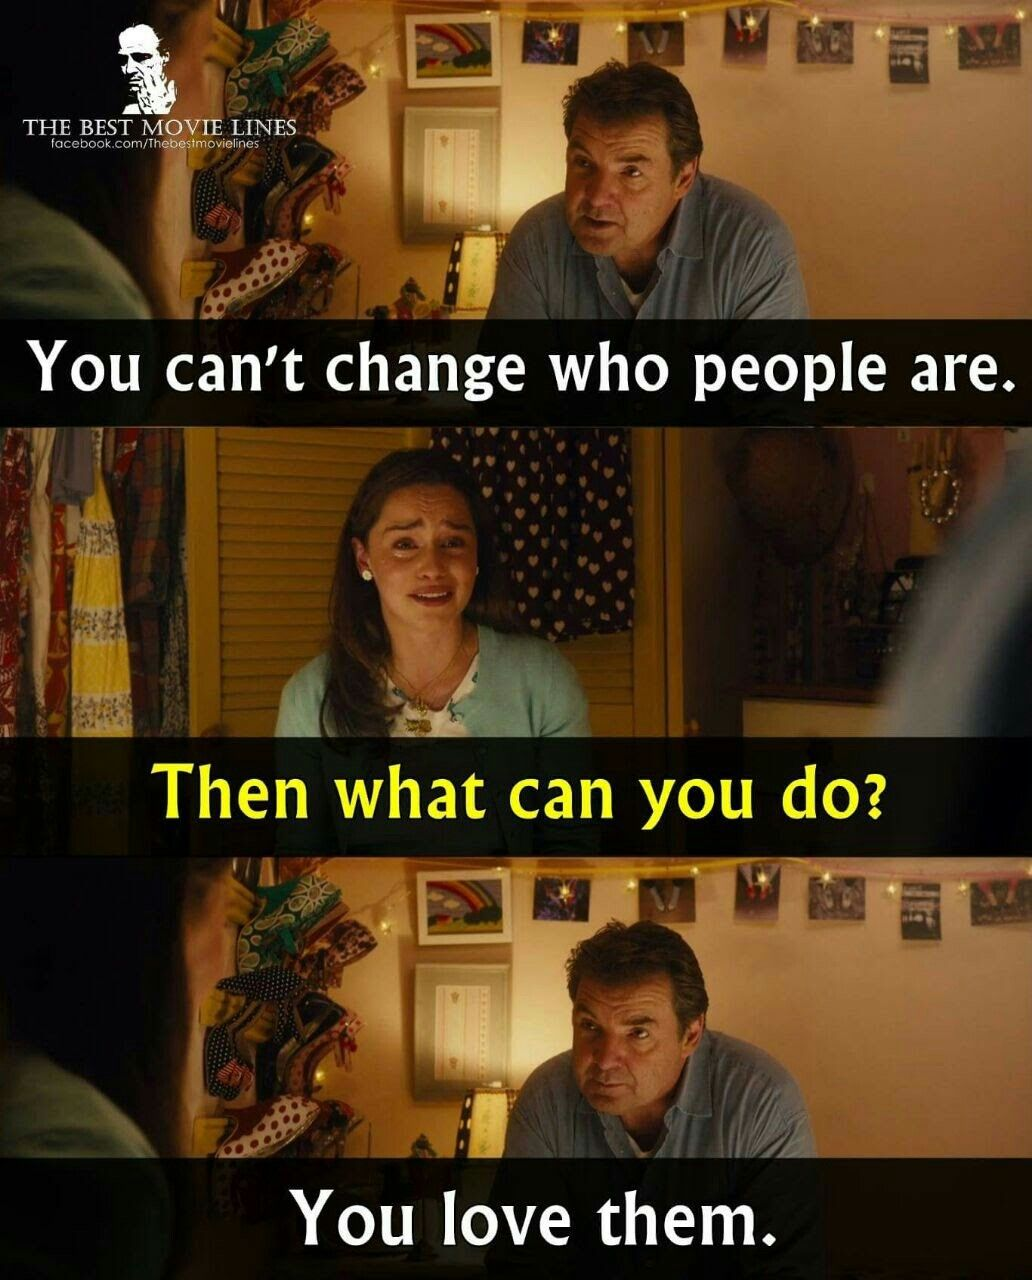 Pin By Ariba On Quotes Sayings Funny Movie Lines Movie Lines Best Movie Lines